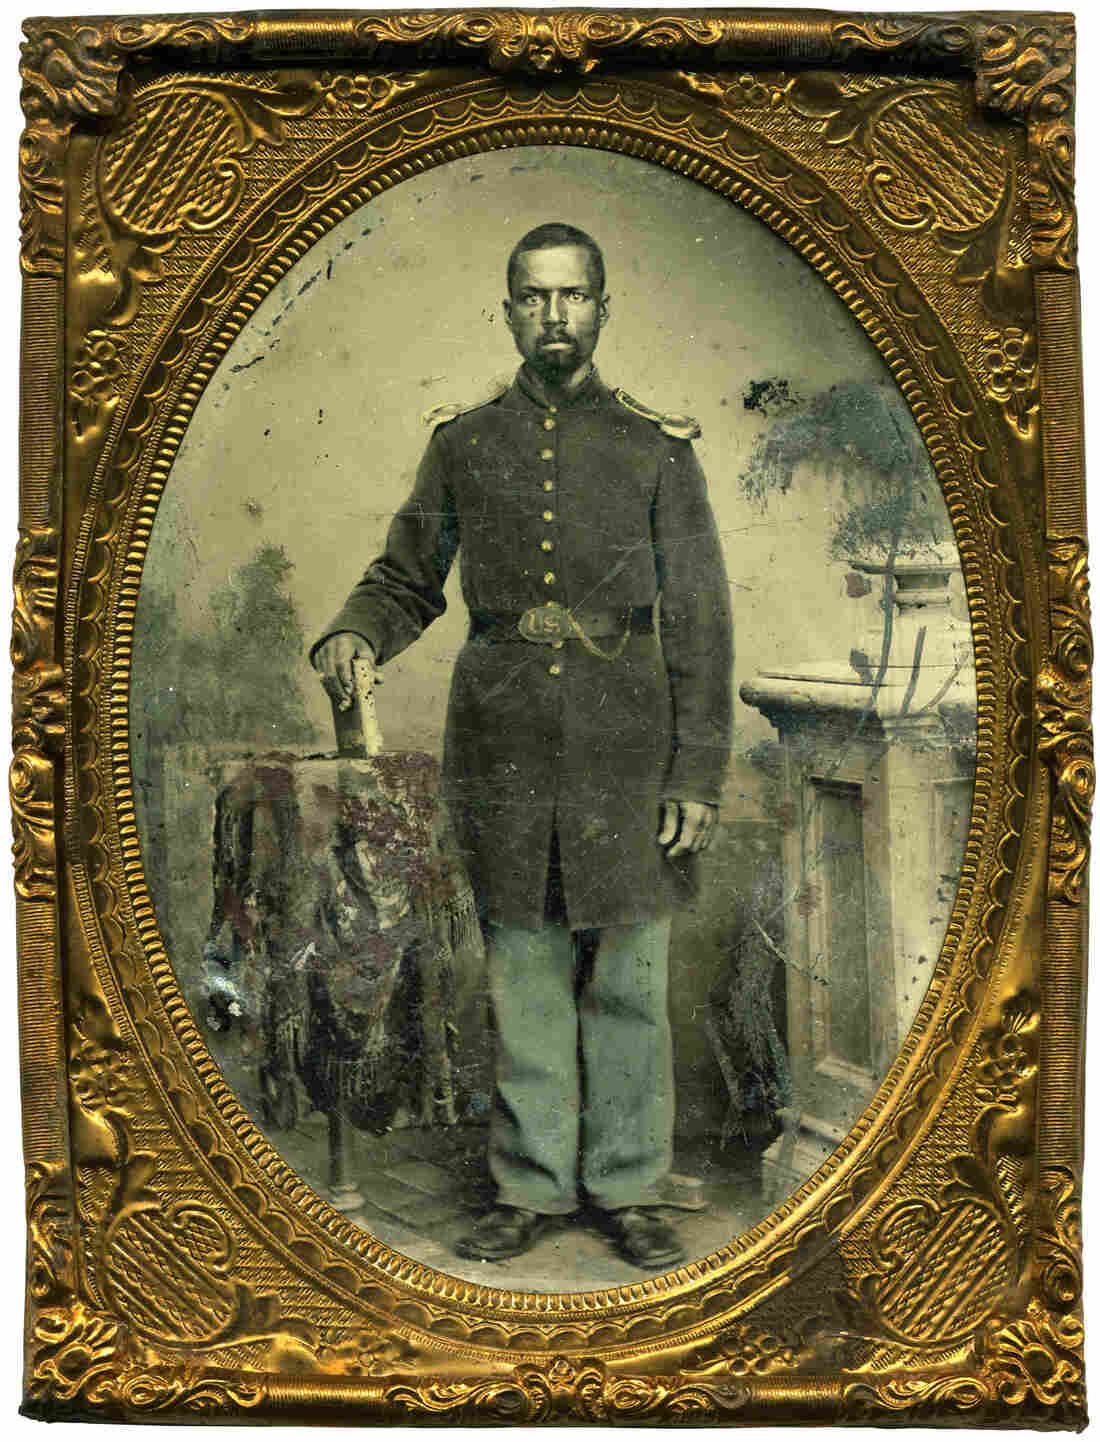 After an initially frustrating search for identifiable Civil War portraits, Coddington finally came across this image of William Wright of the 114th U.S. Colored Infantry. That find inspired his continued hunt for similar images.